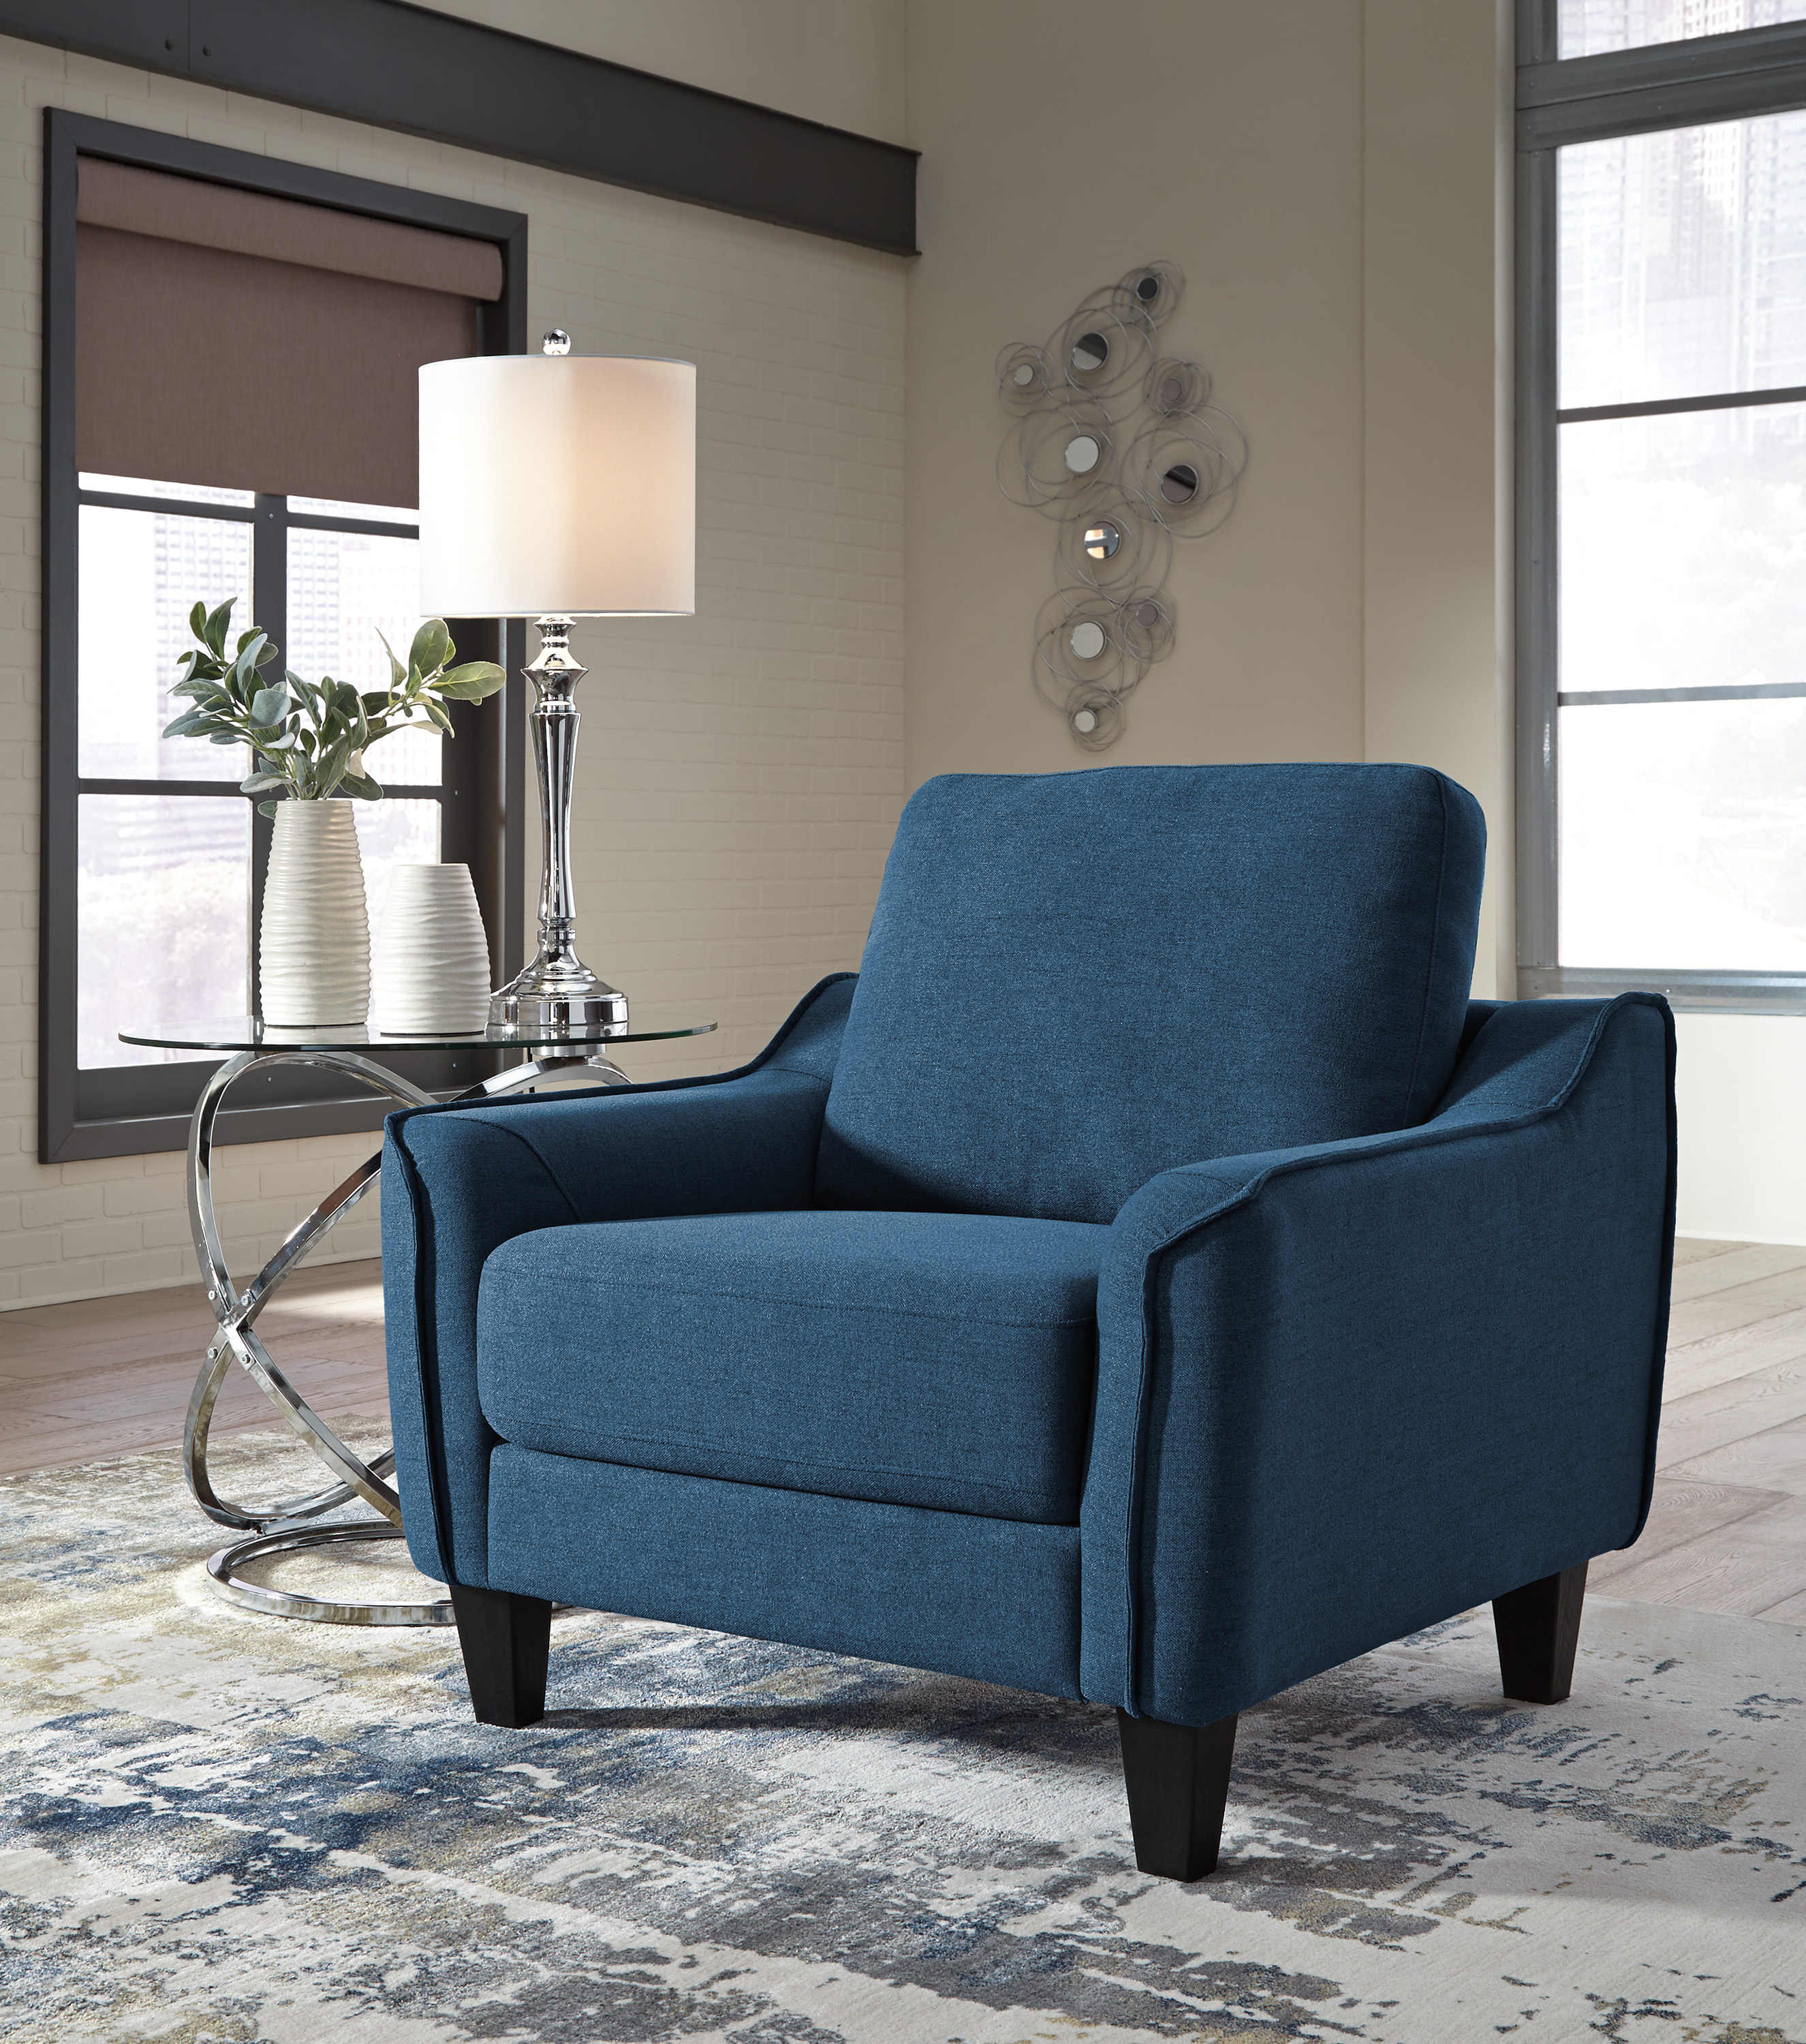 Cheap Furniture Delivered: Jarreau Blue Sofa Chaise Sleeper FREE DELIVERY!